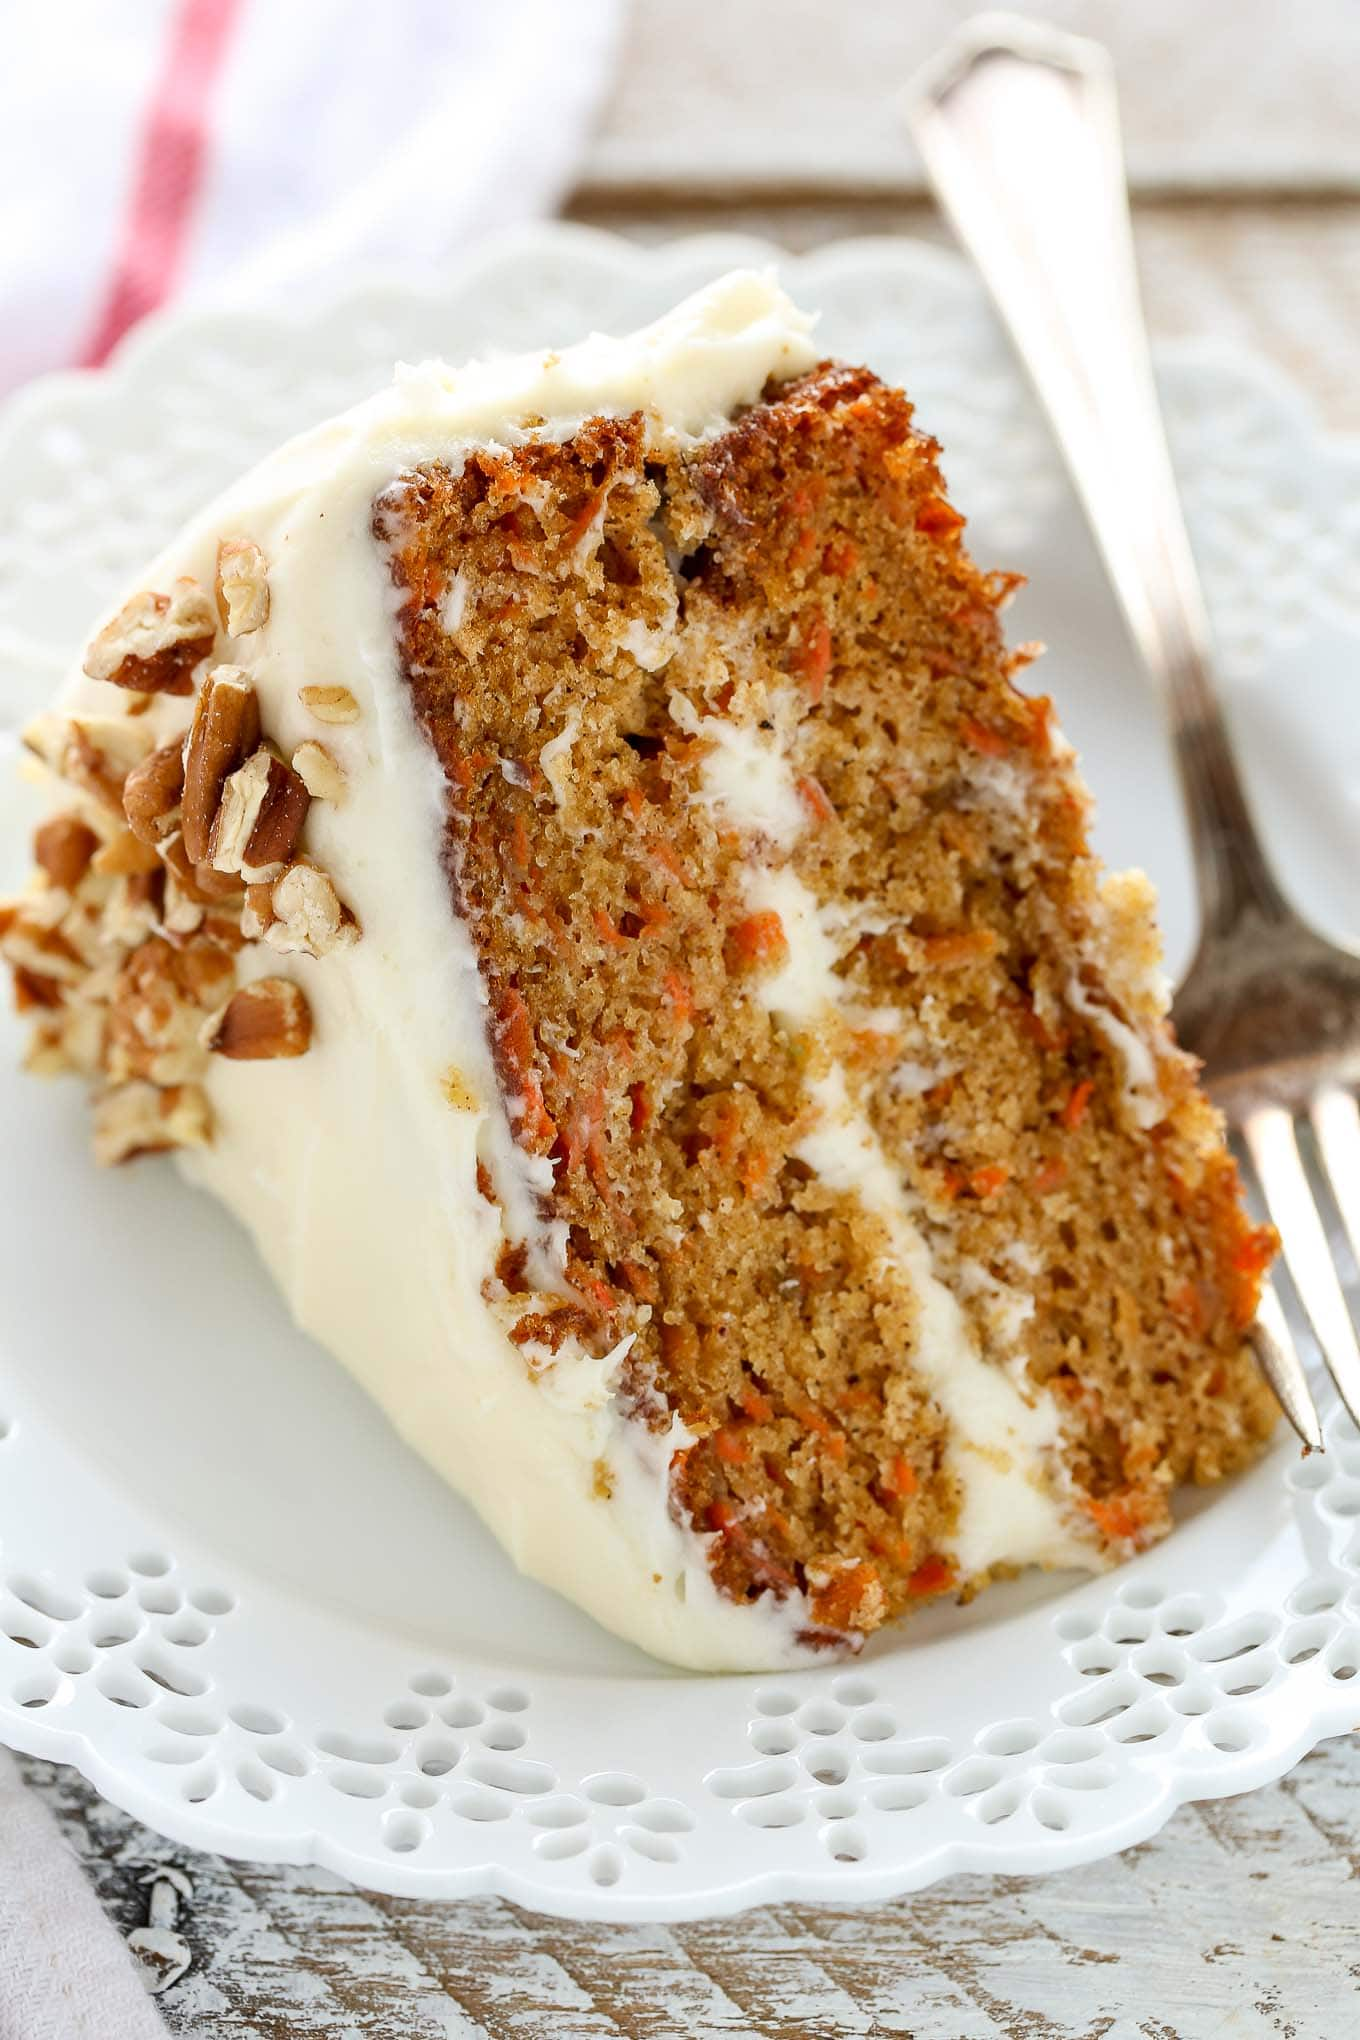 Best Store Bought Carrot Cake Mix